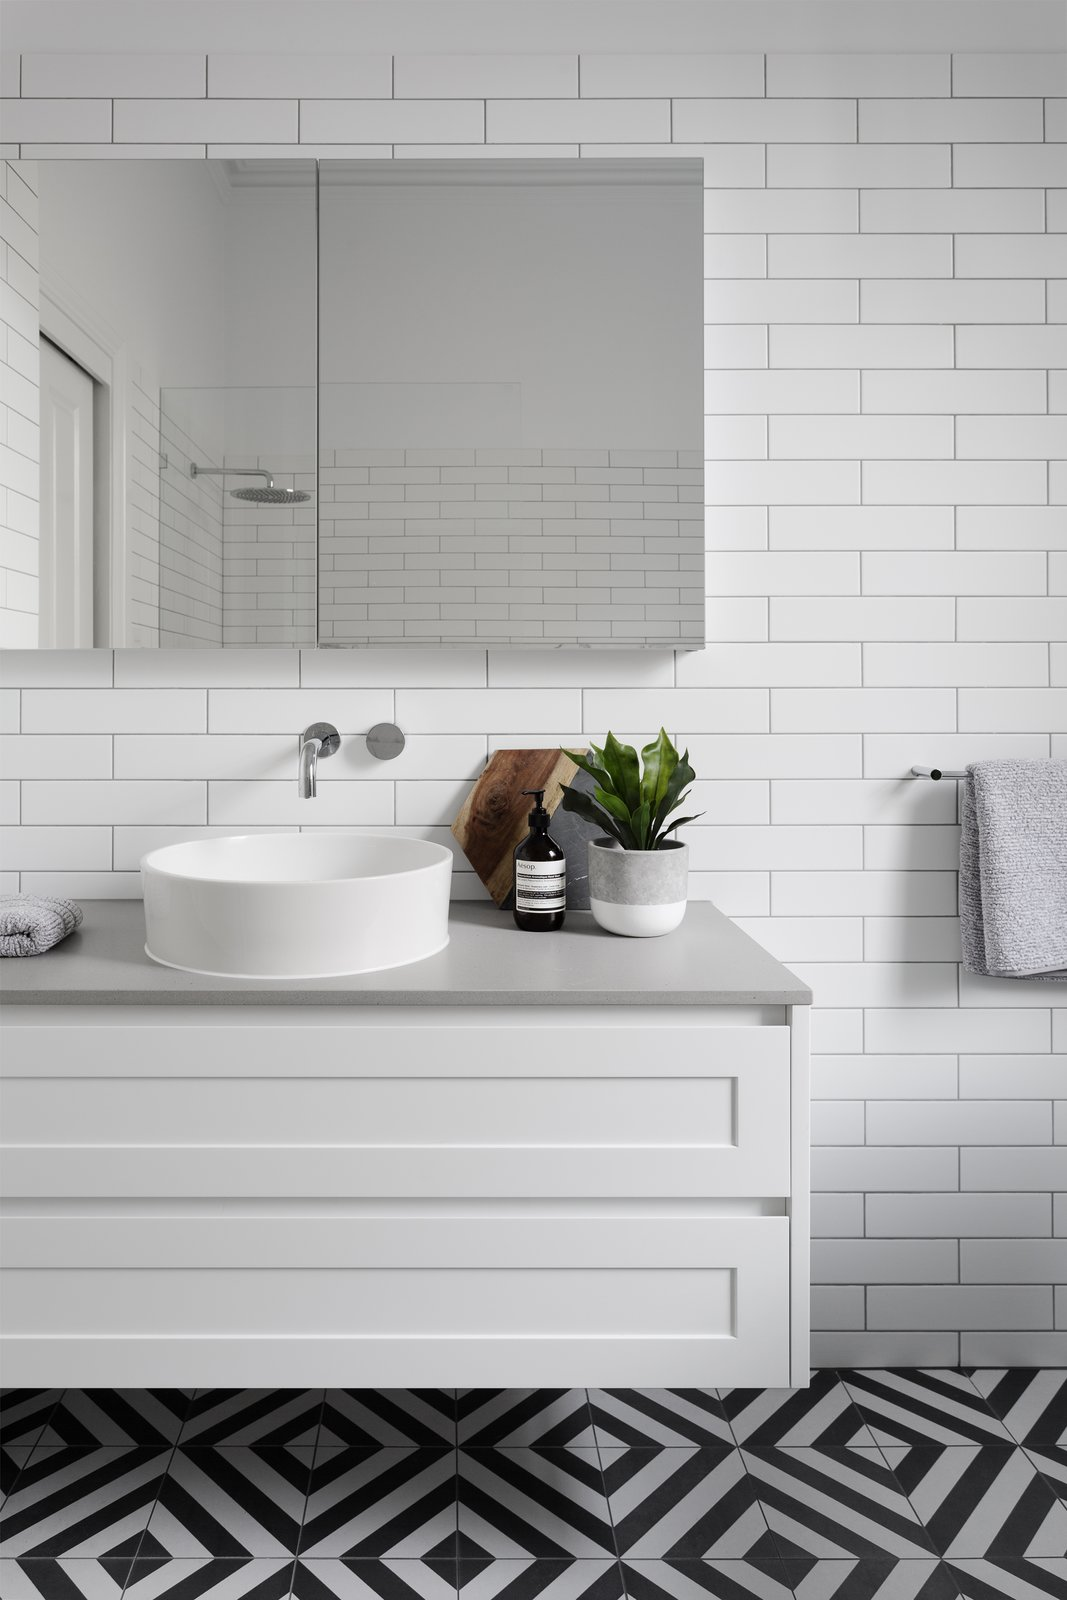 Bath Room, Subway Tile Wall, Engineered Quartz Counter, Vessel Sink, and Porcelain Tile Floor  Photo 8 of 8 in 6 Insider Tips For Bathroom Design From the Experts